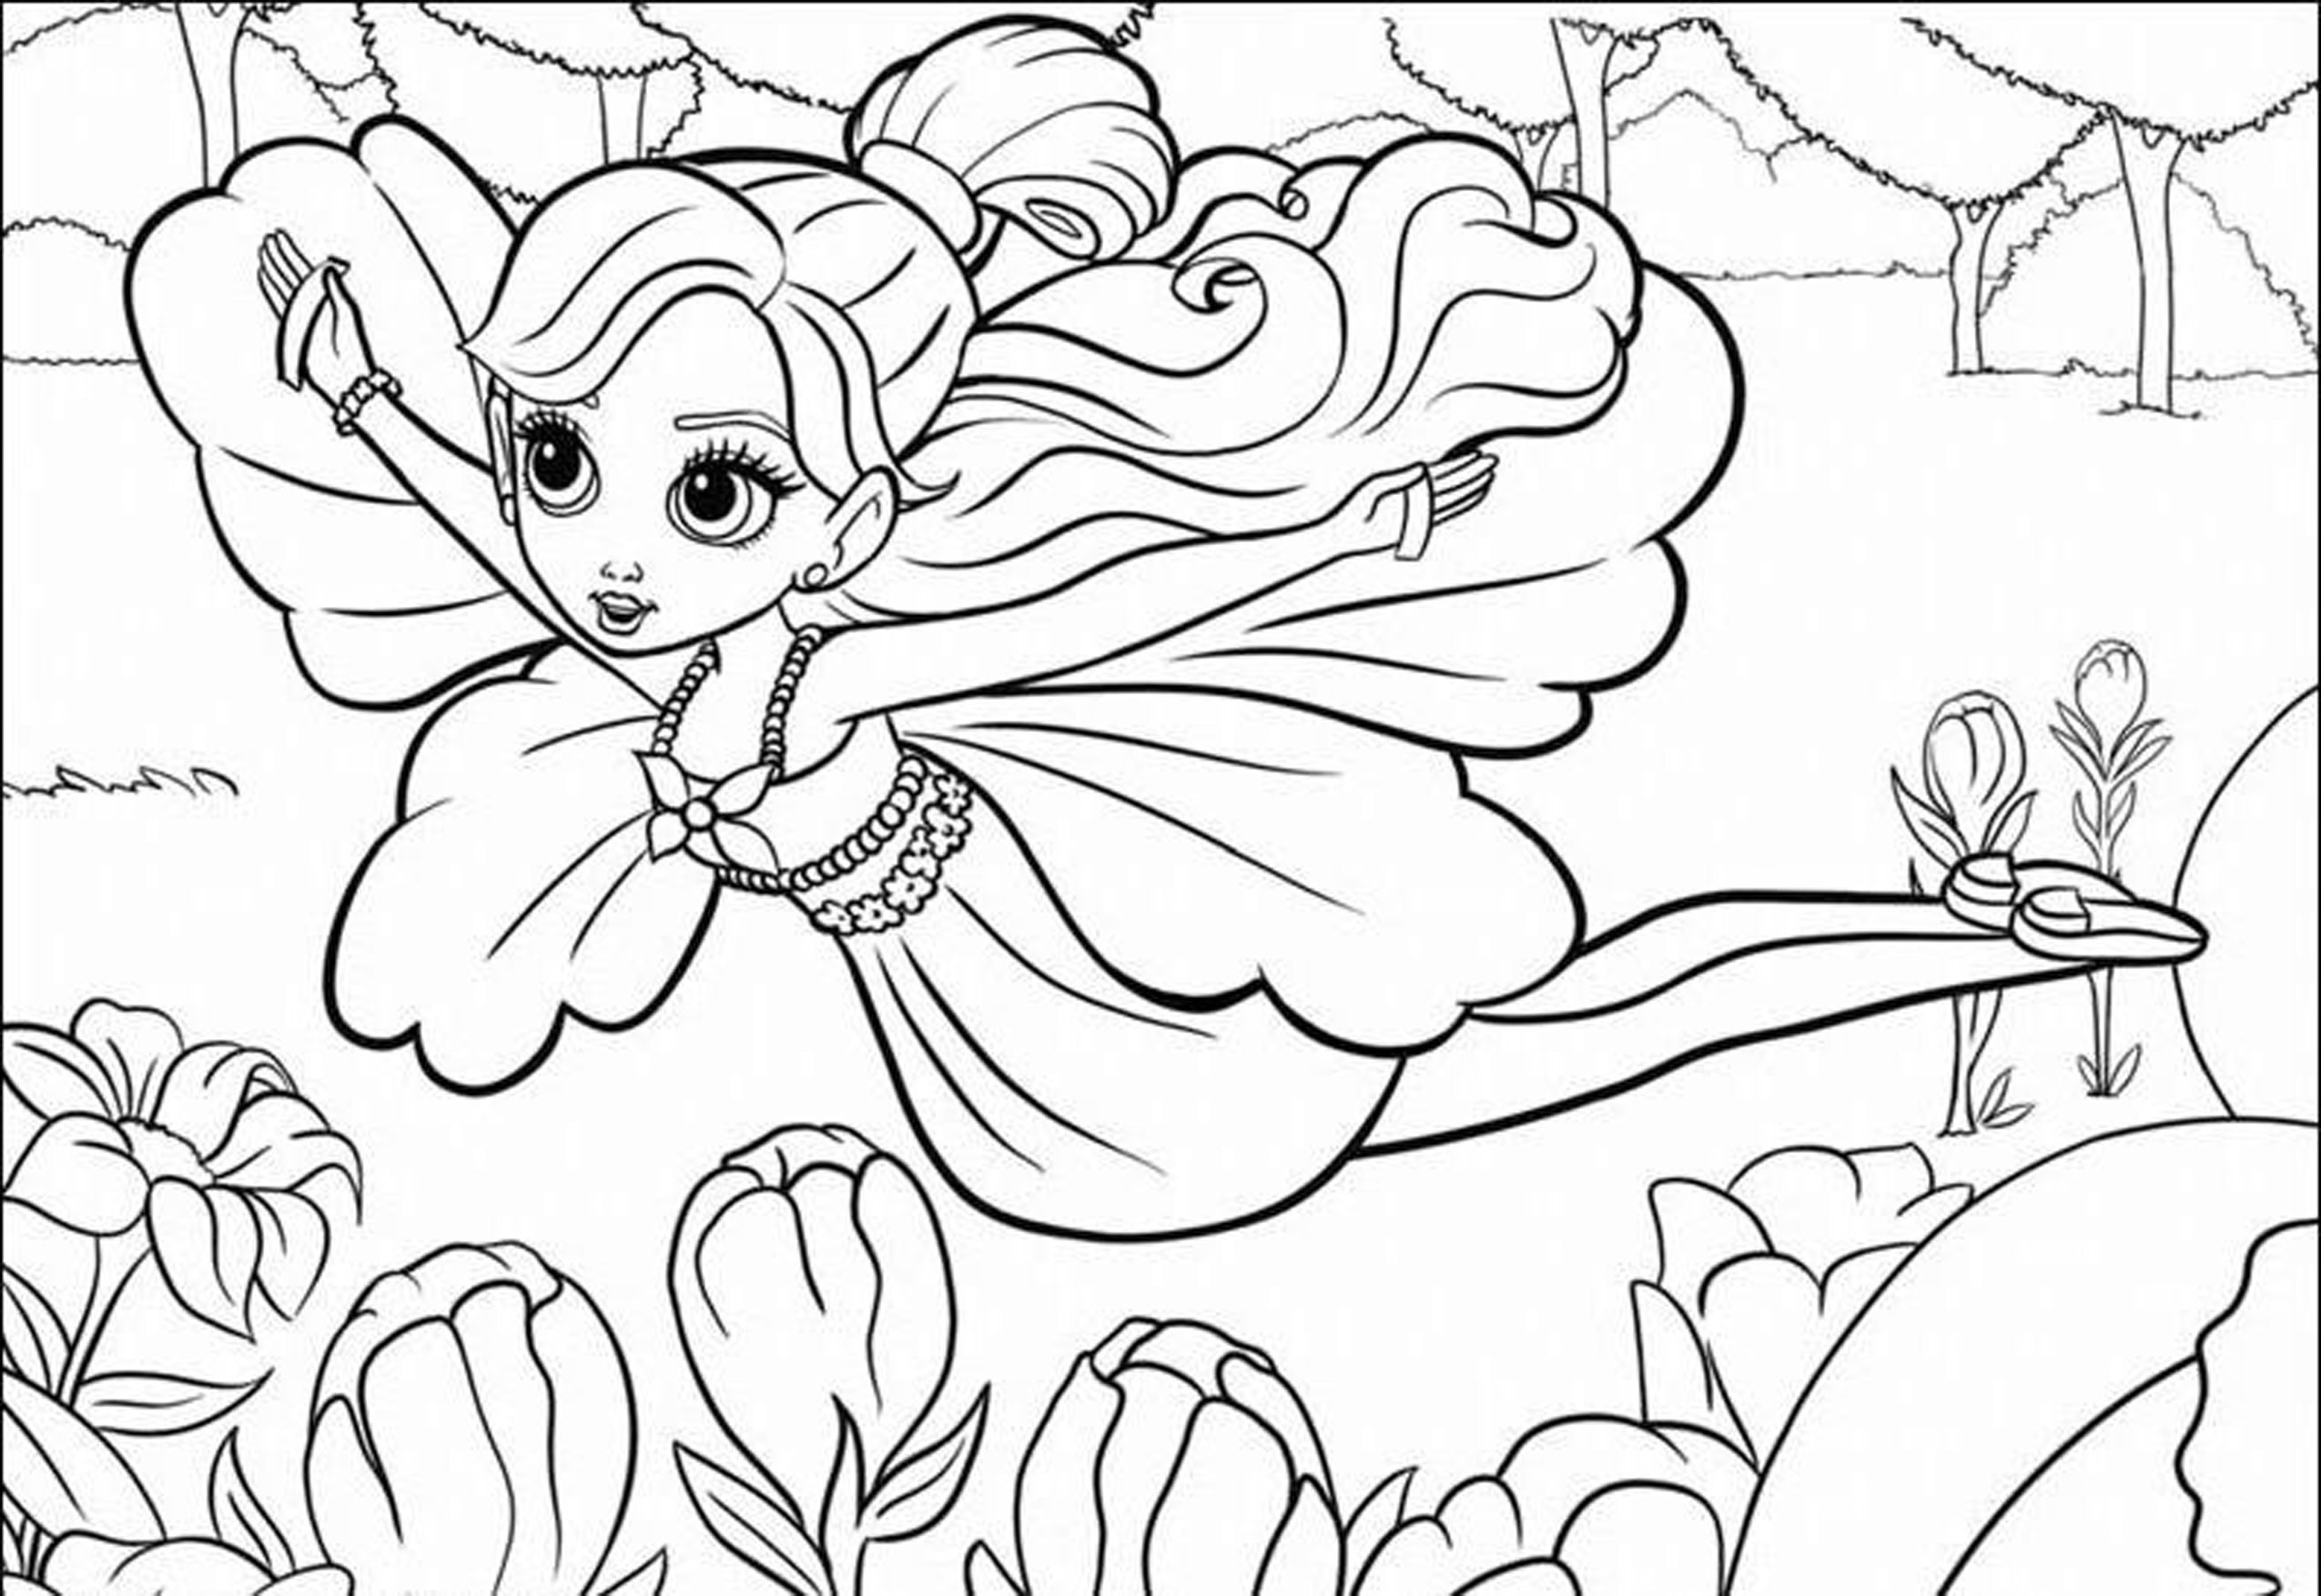 Coloring Sheets For Girls Teen  Cartoon Coloring Pages For Teenagers Girls Kids Colouring